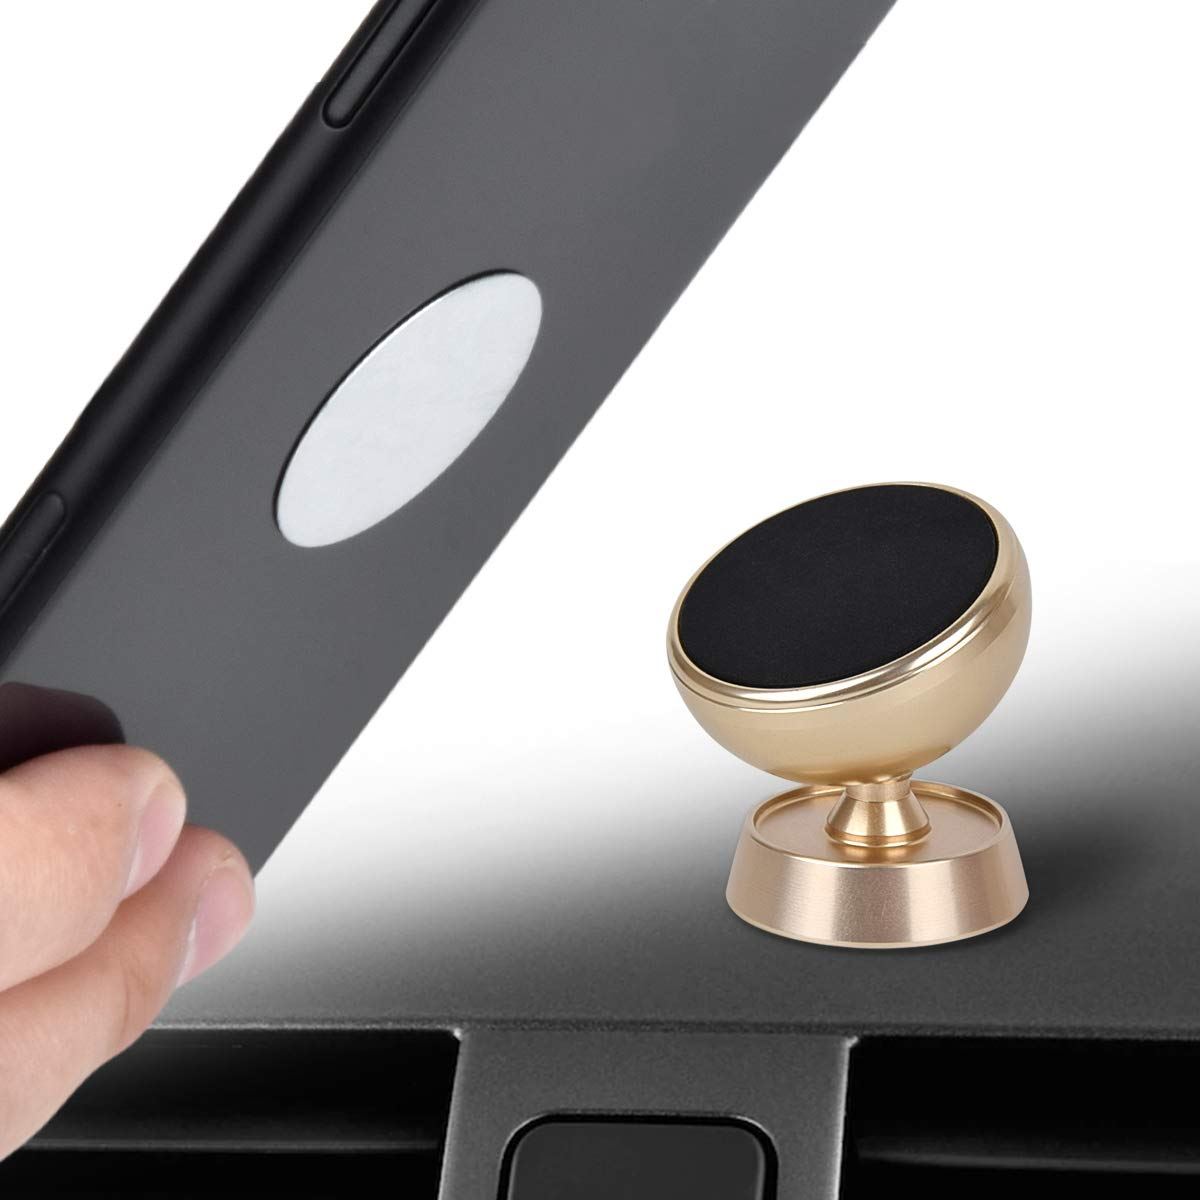 Magnetic Car Phone Mount Universal Magnetic Dashboard Phone Car Mounts Holder Car Cell Phone Mount Holder Compatible Samsung Galaxy S9 S8 S7 S6 Note 8 5 4 Tablet Cradle Mount with Super Strong LG